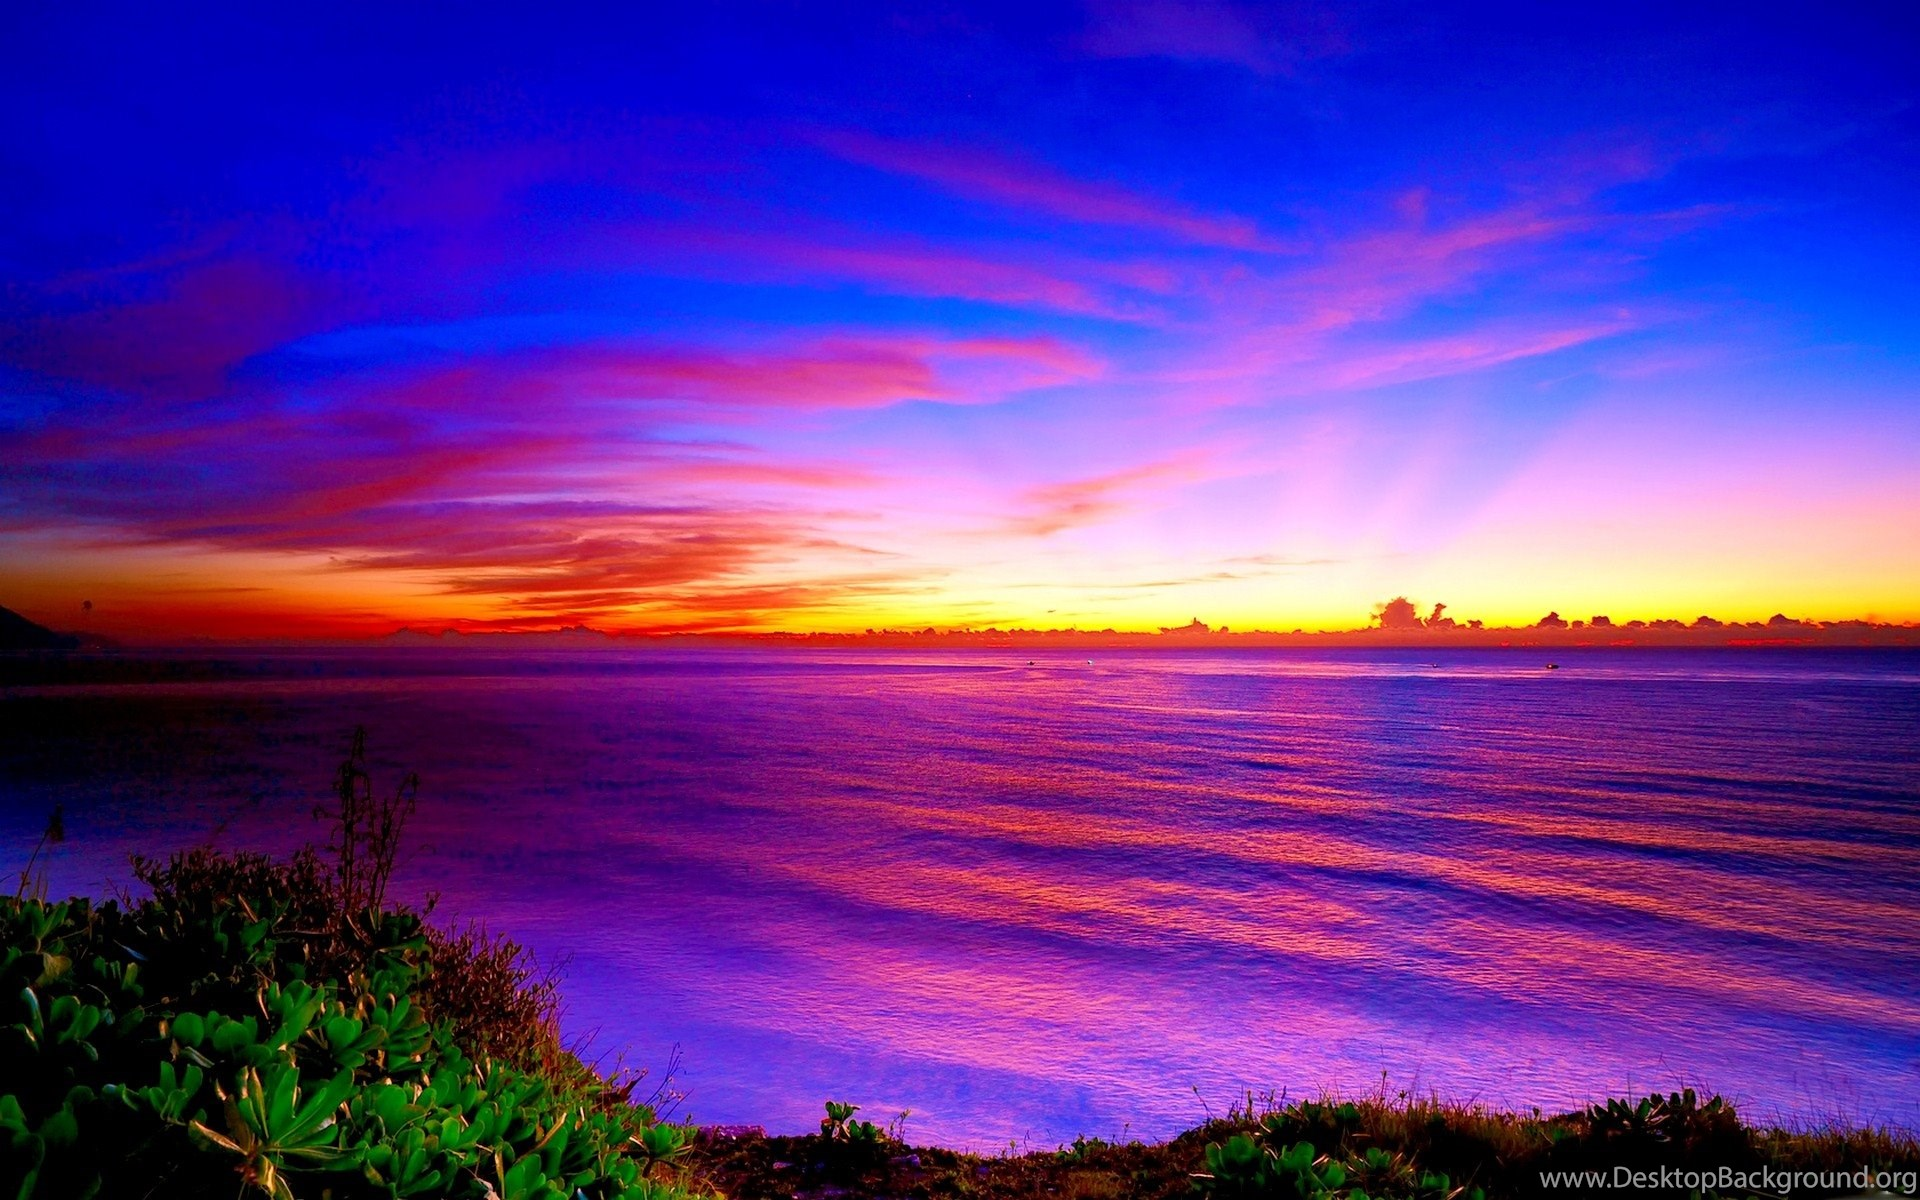 Pictures of nature scenery wallpapers full hd - Hd photos of scenery ...